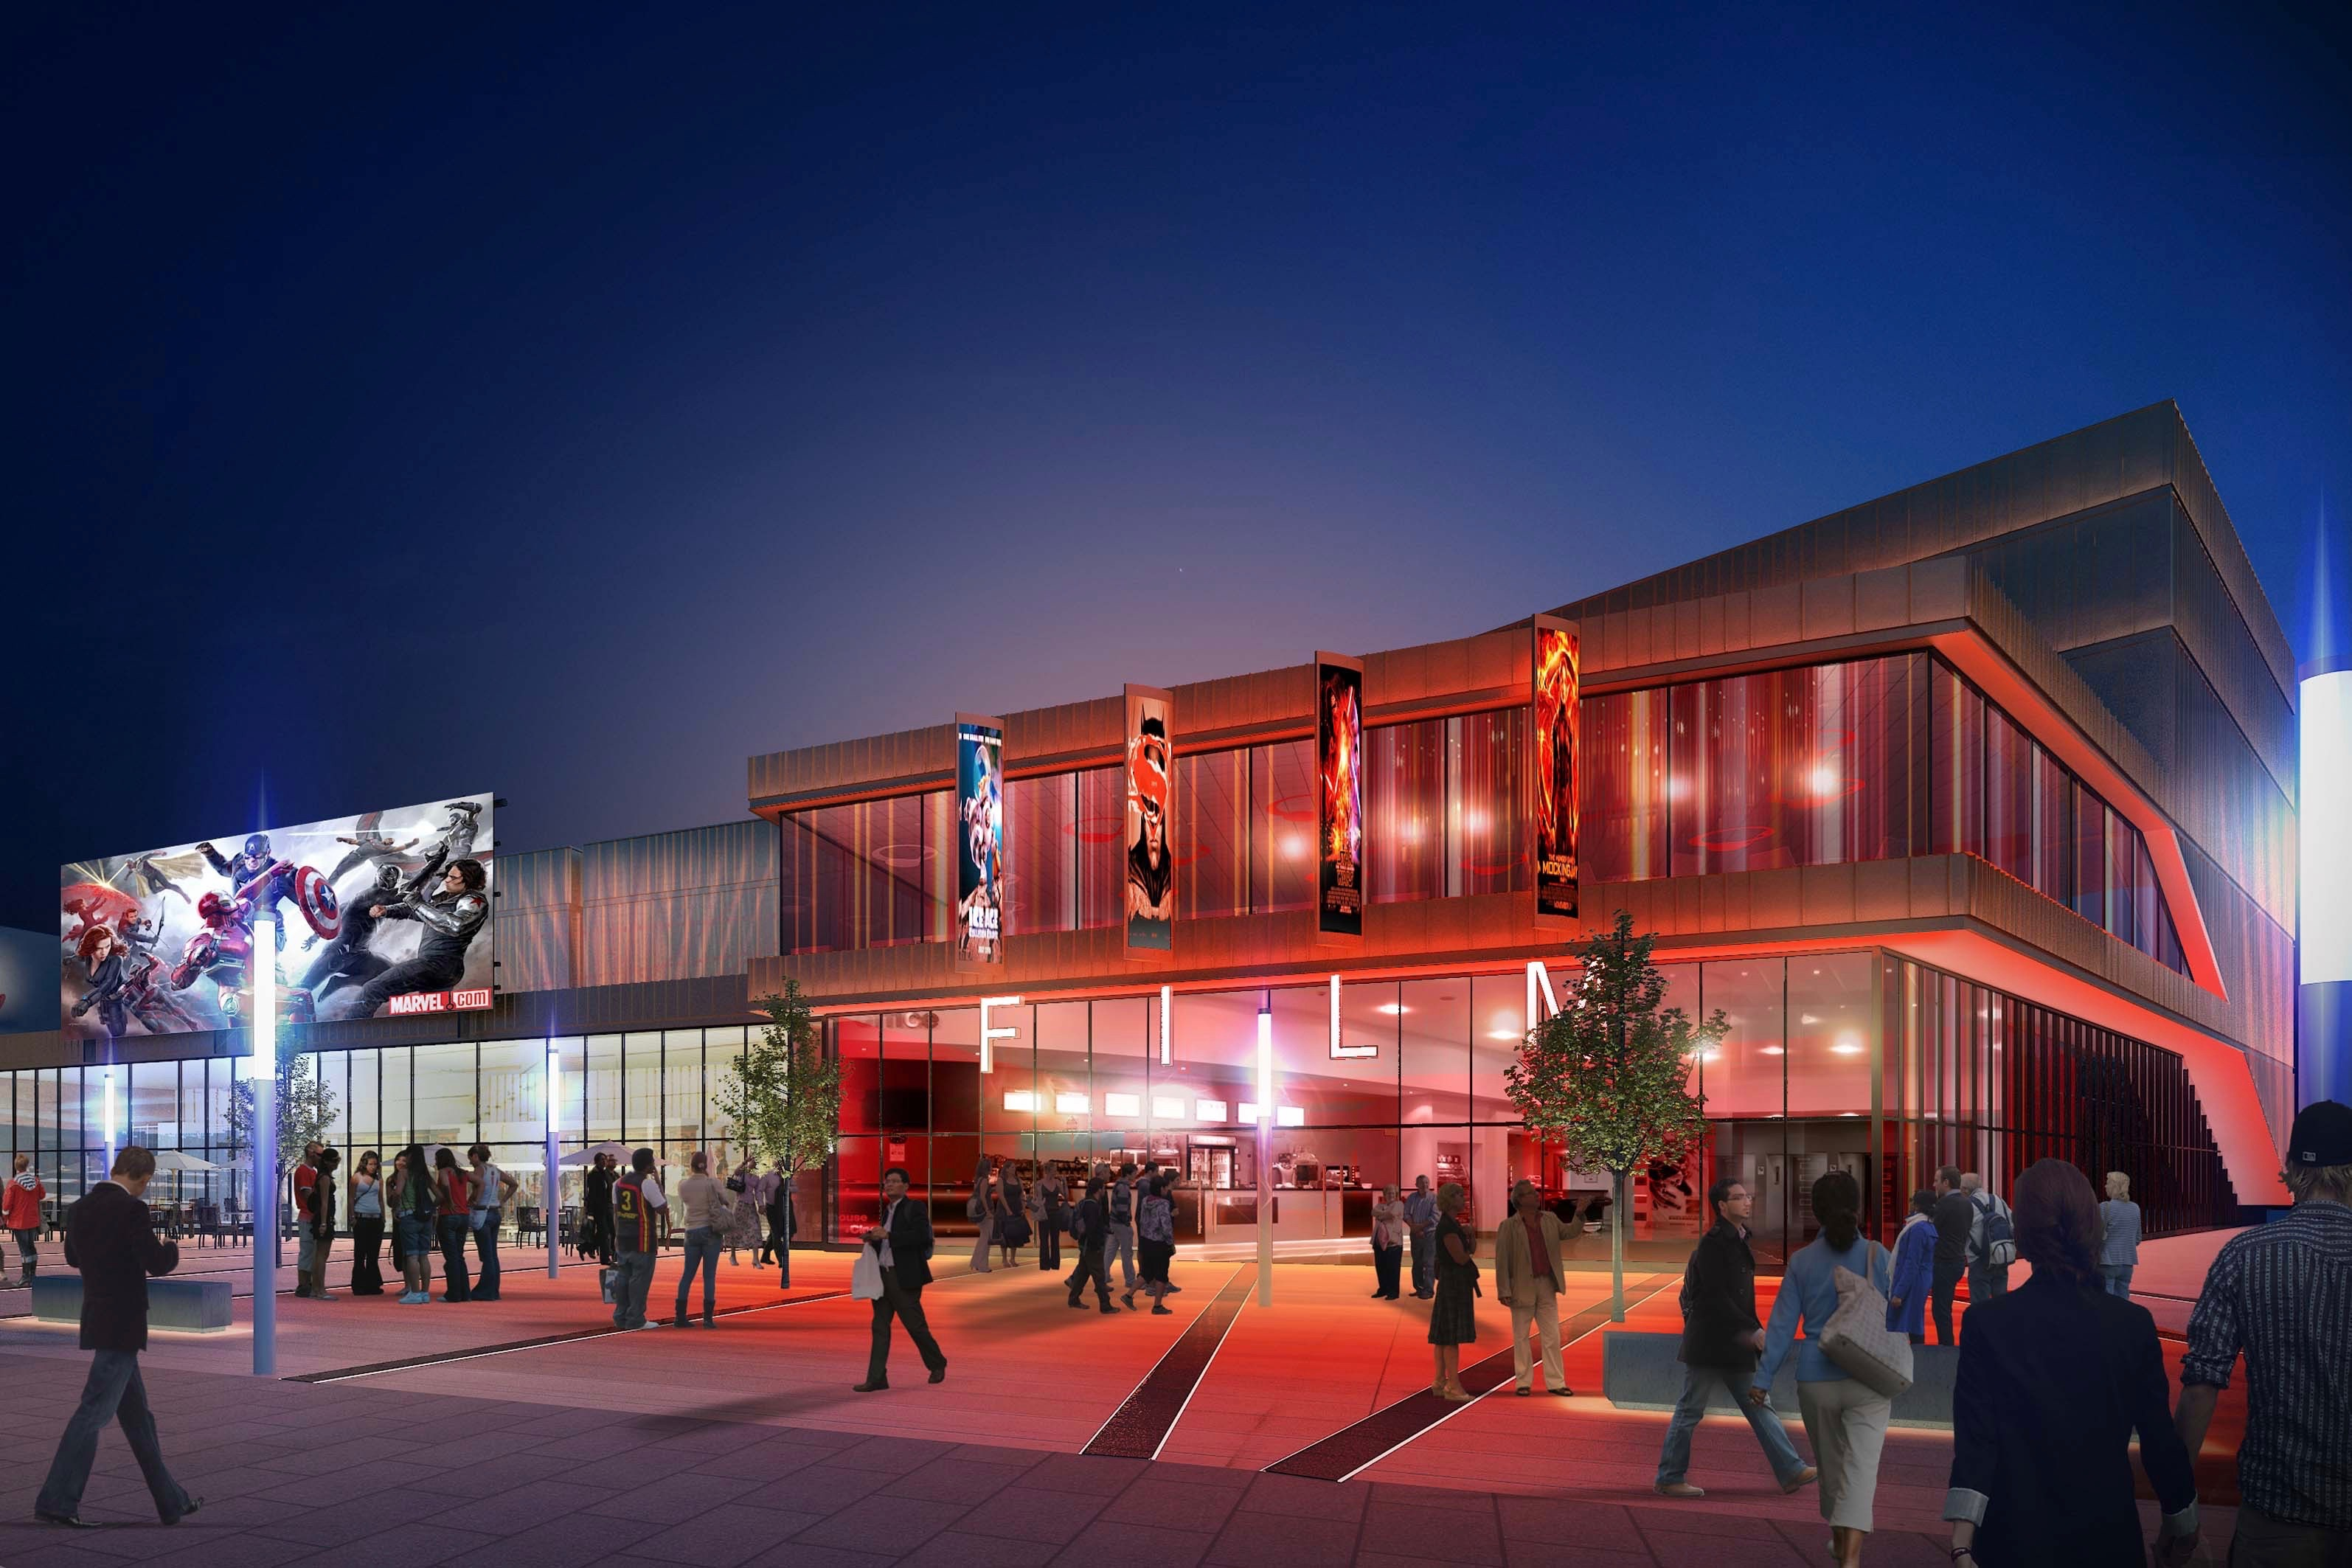 Artist's impression of the Westside development in Wolverhampton